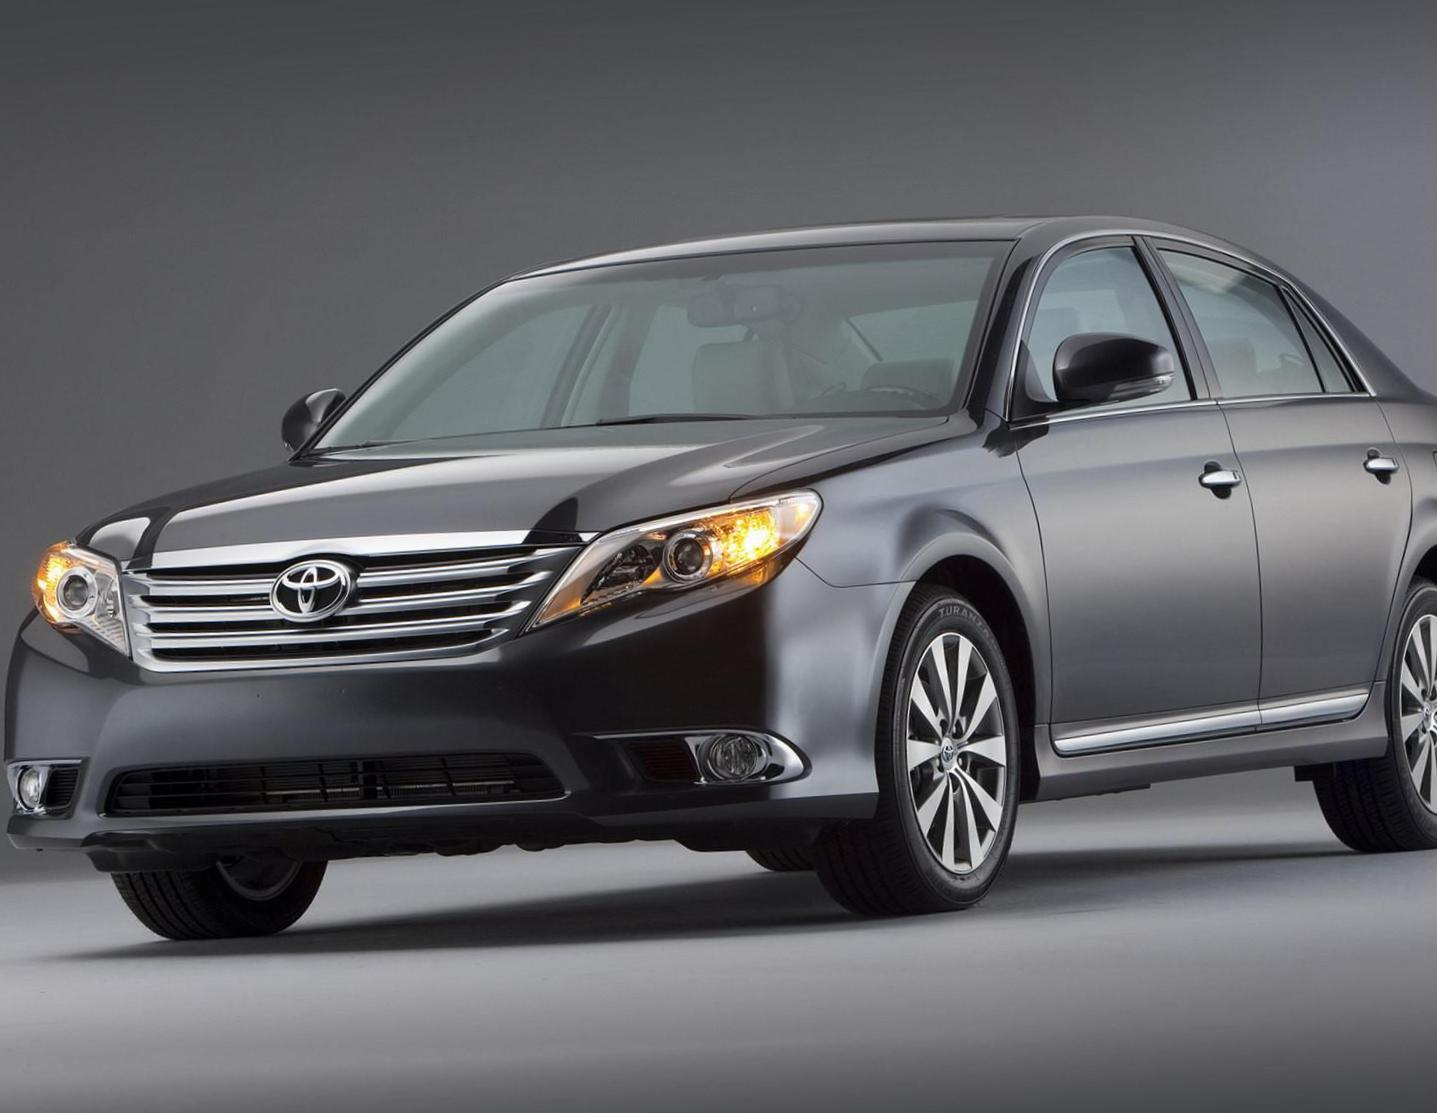 Avalon Toyota Specifications 2104